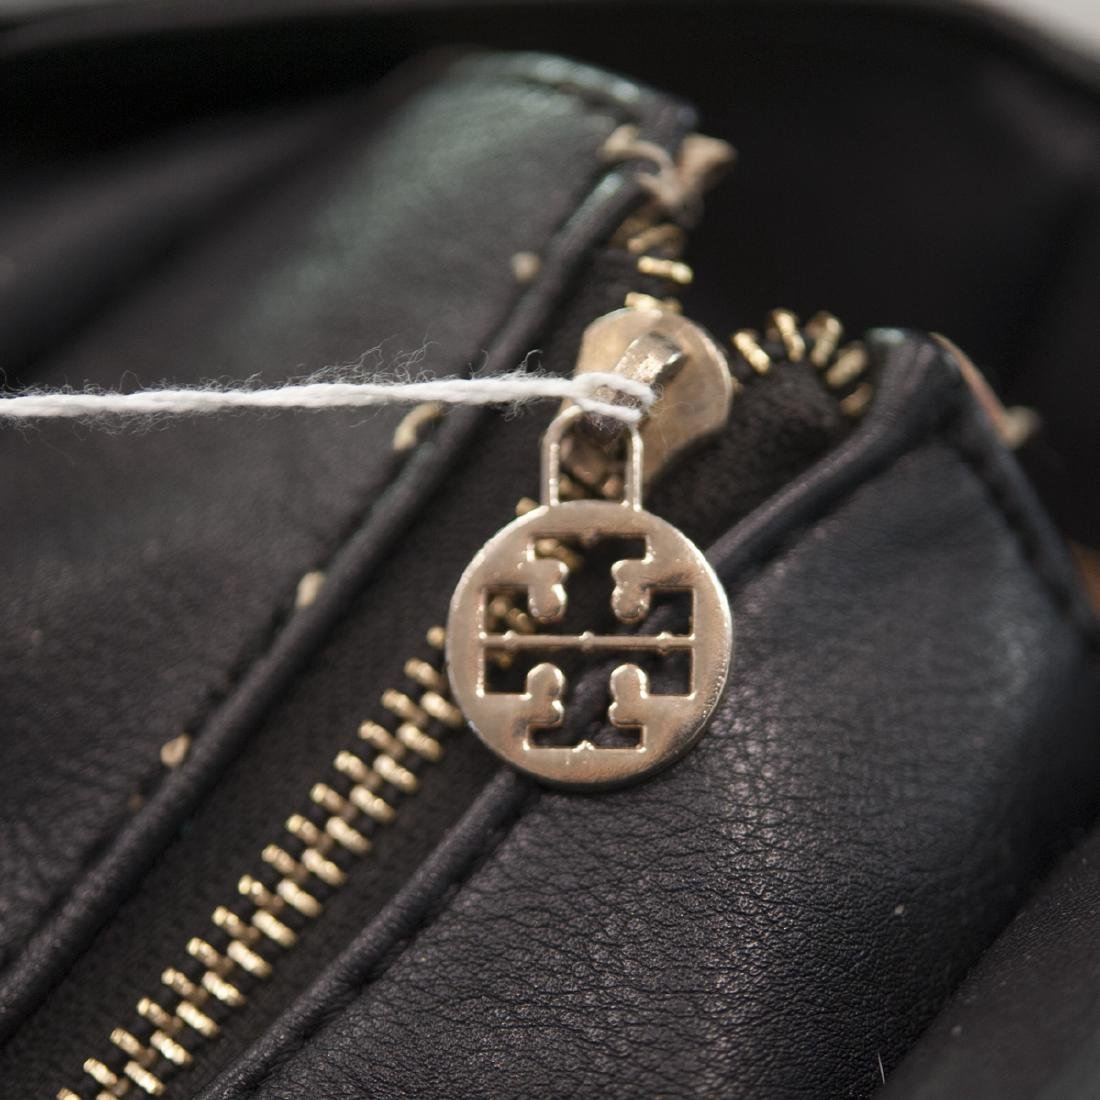 Tory Burch Leather Tote Bag - 6